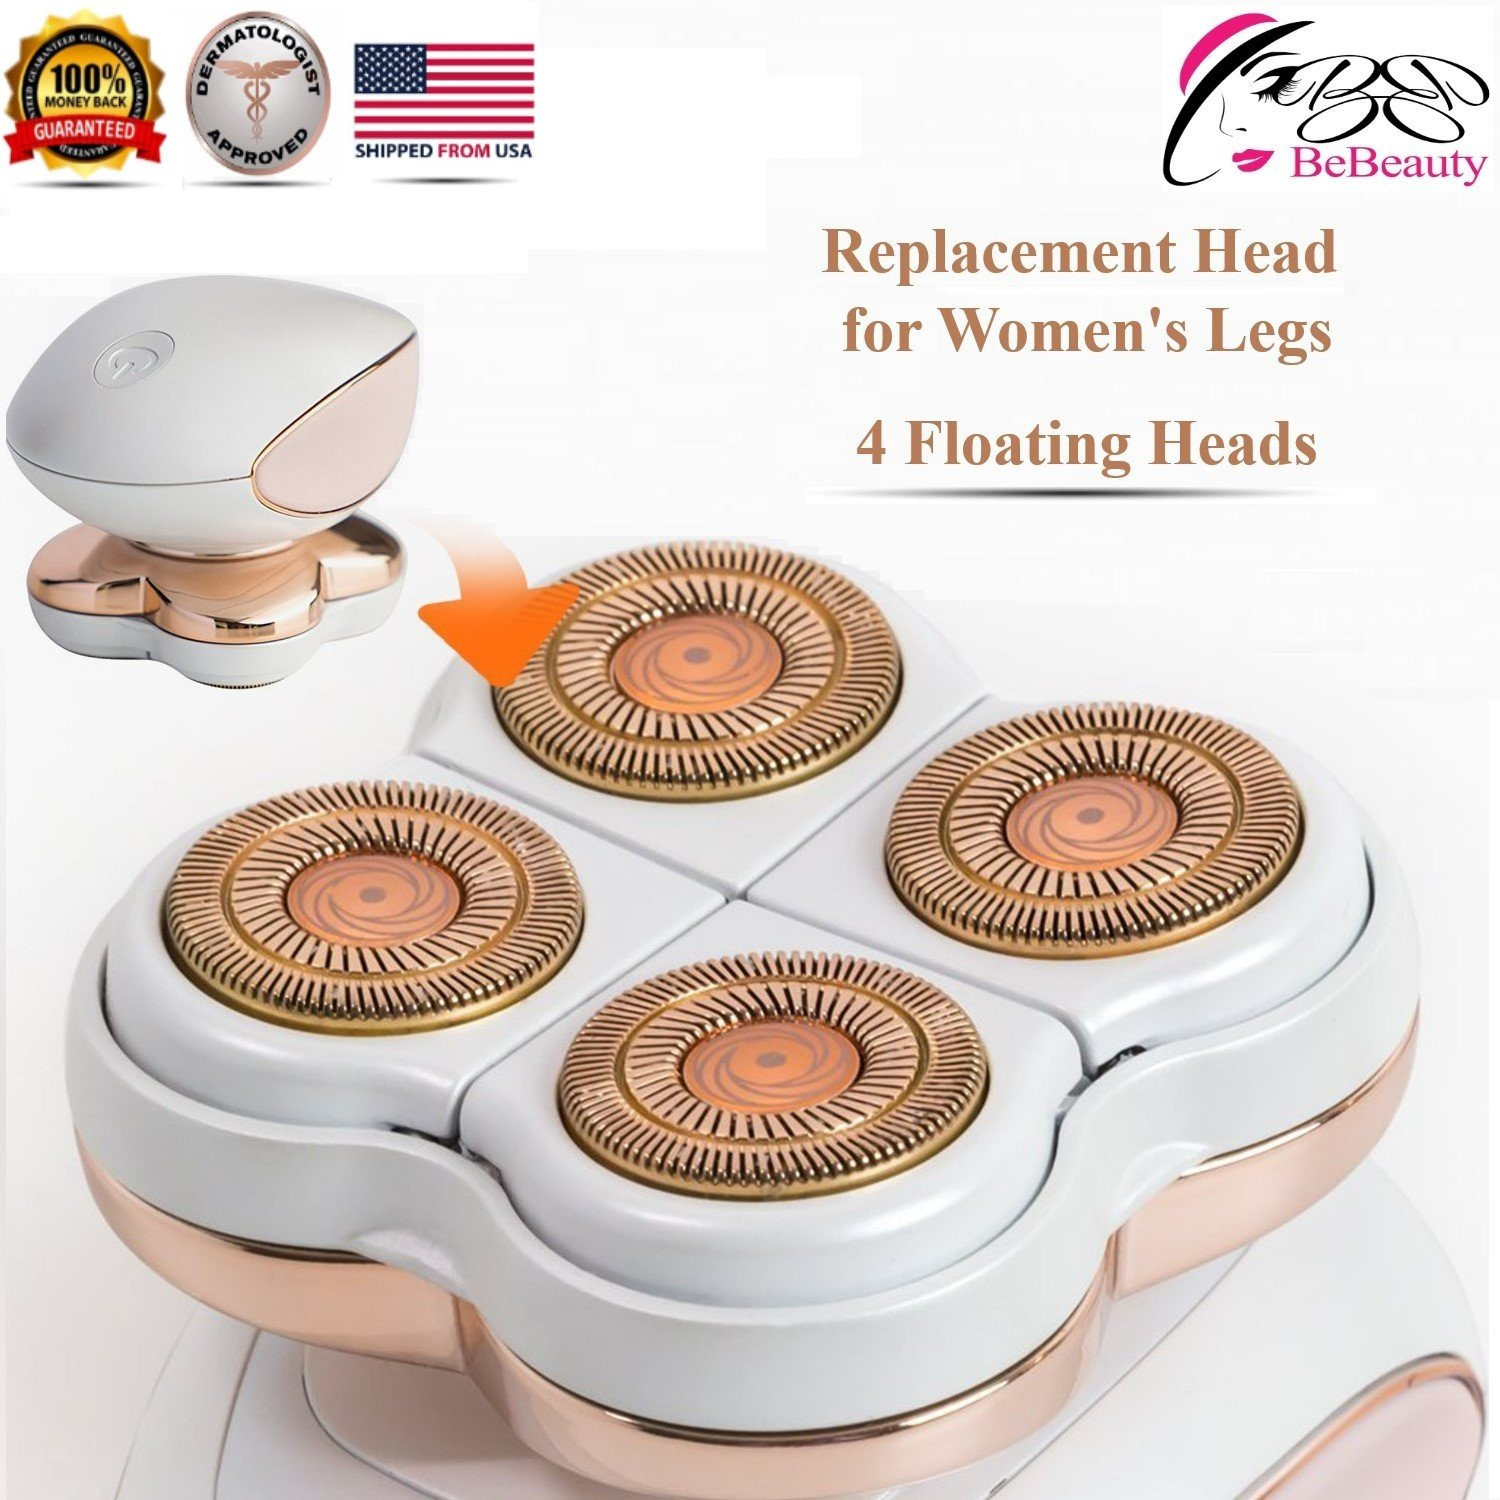 Replacement Blade Heads Legs Women Hair Remover, Hair Remover Replacement Head with a Bracket for Legs, Bikini, Arms, Ankles, Armpits As Seen On TV 4 Floating Heads.